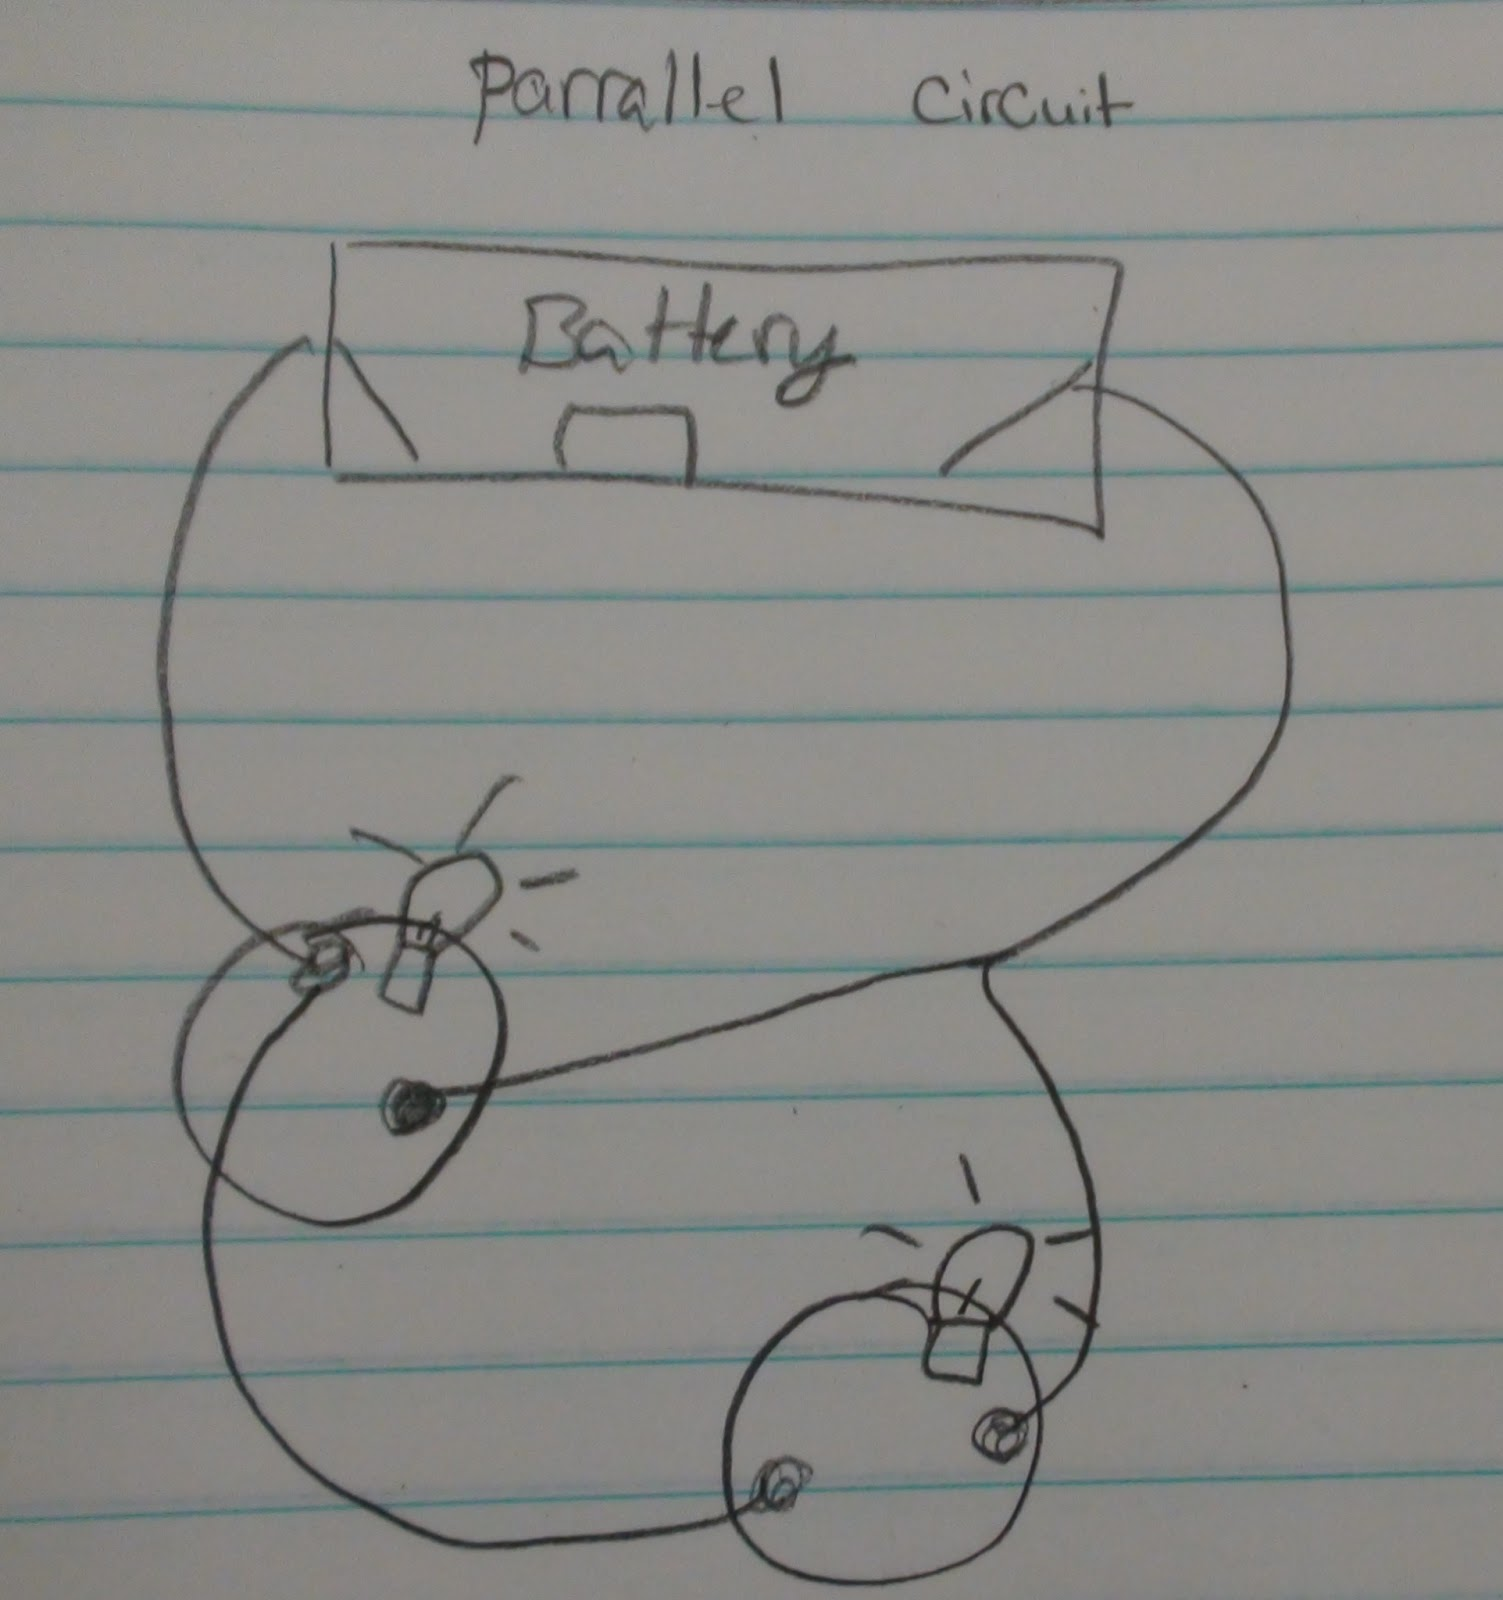 Series And Parallel Circuits Diagrams Likewise Series Parallel Circuit